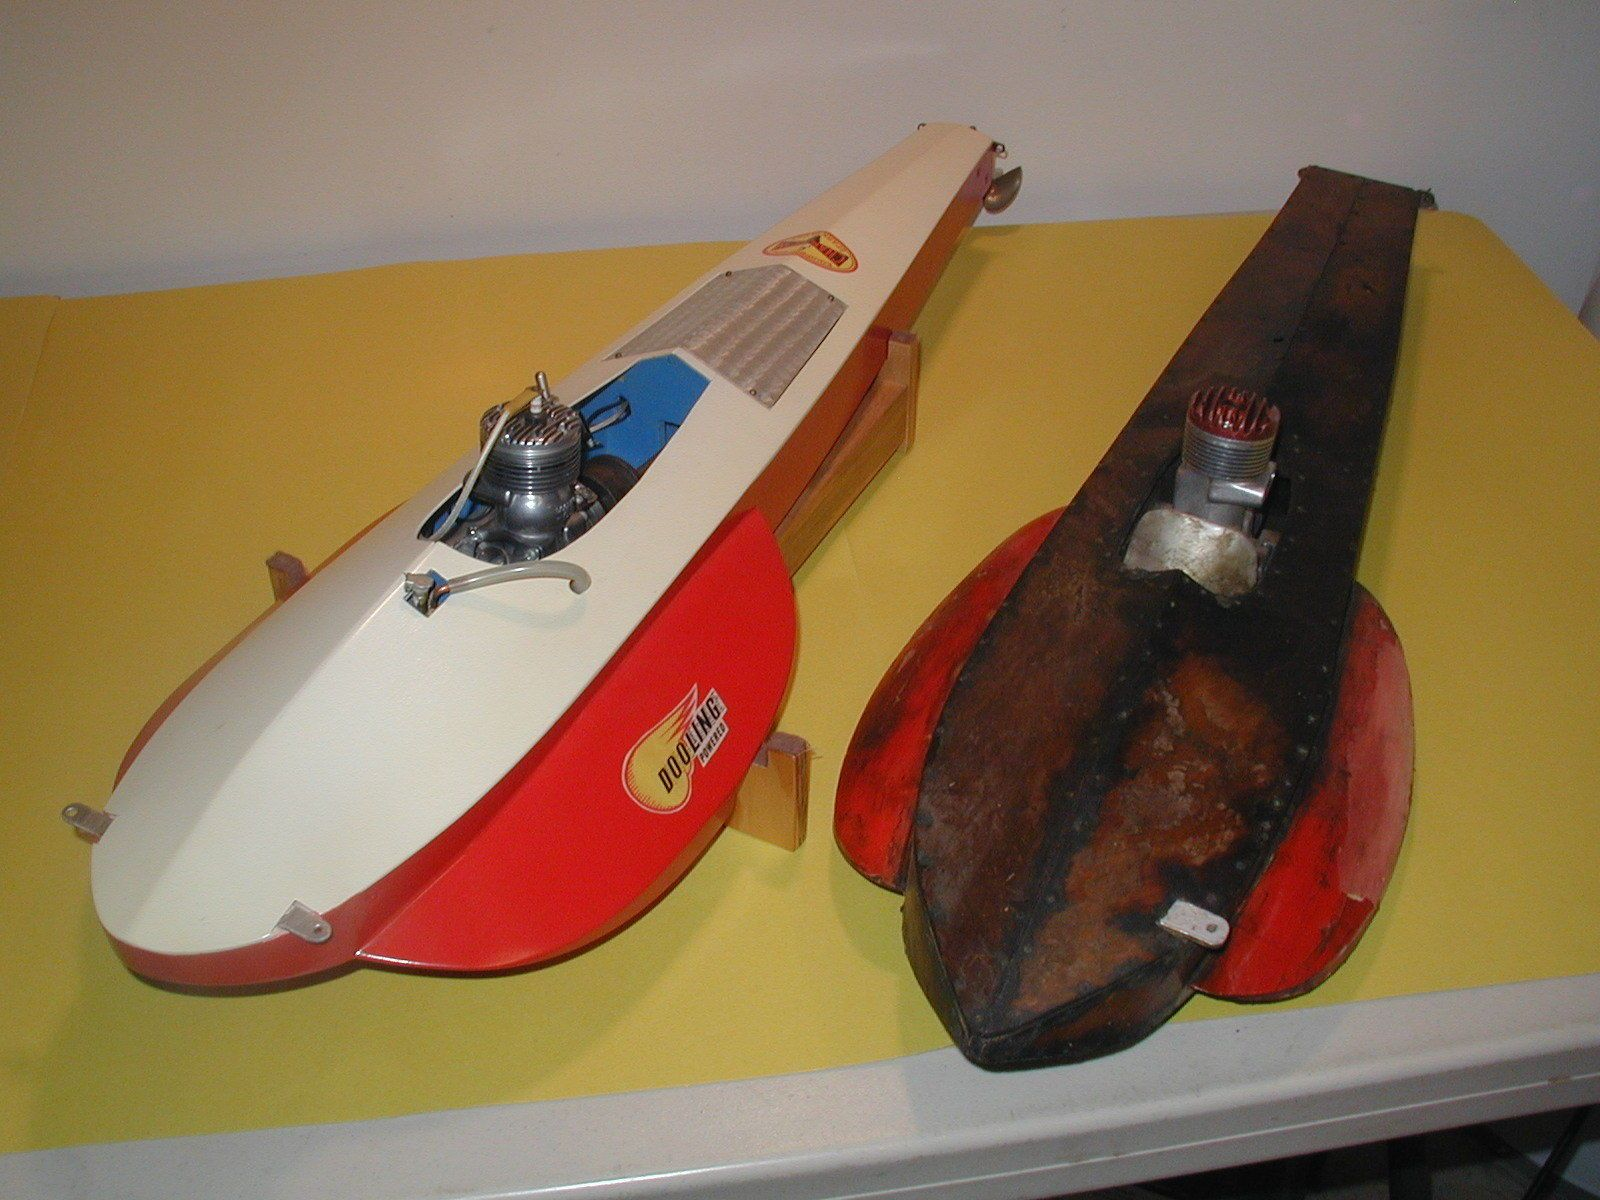 1940's Tether Boat Hydroplane with Dooling Model Airplane